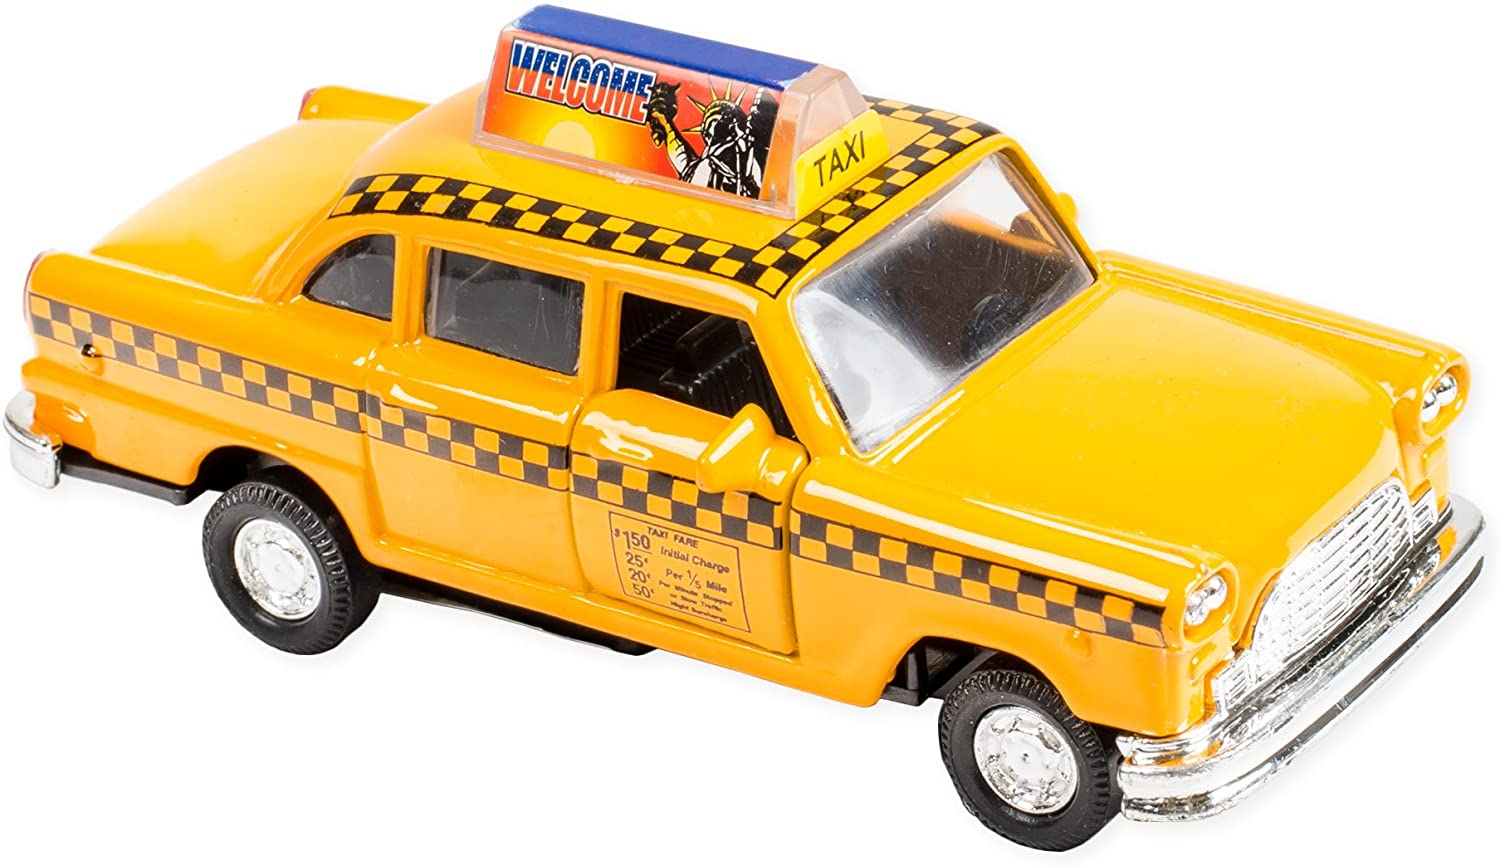 Classic Checkered NY City Taxi Cab Die Cast 4.75 Inch Toy Car